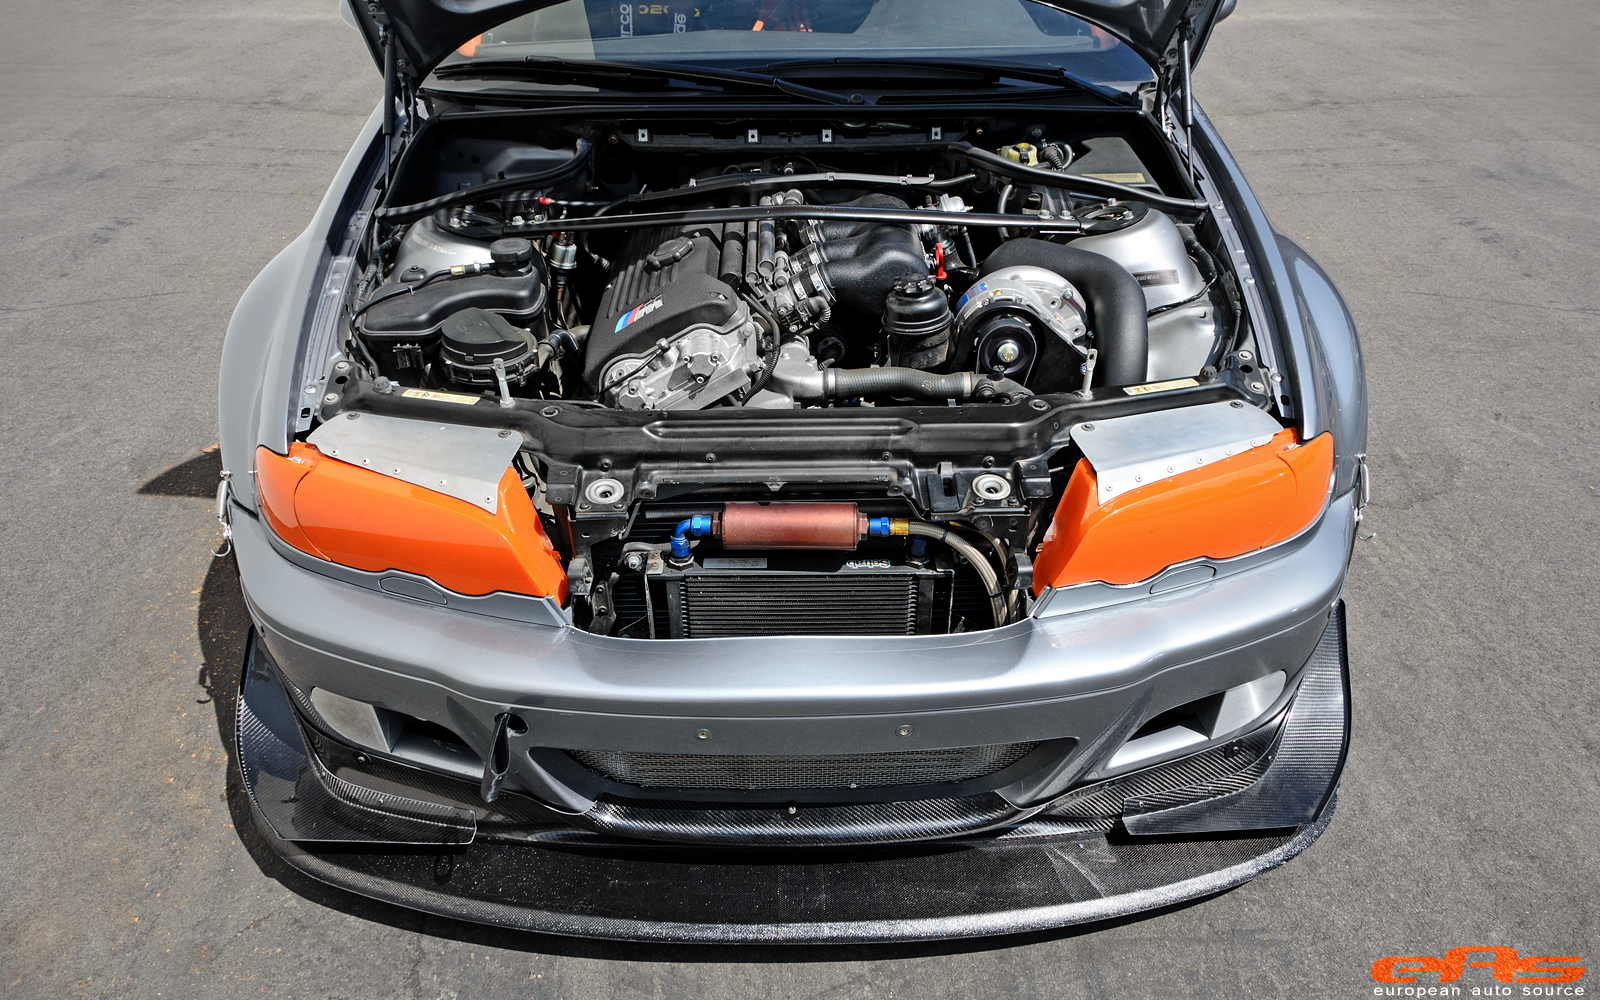 E46 M3 Track Machine Gets Supercharged Bmw Performance Parts